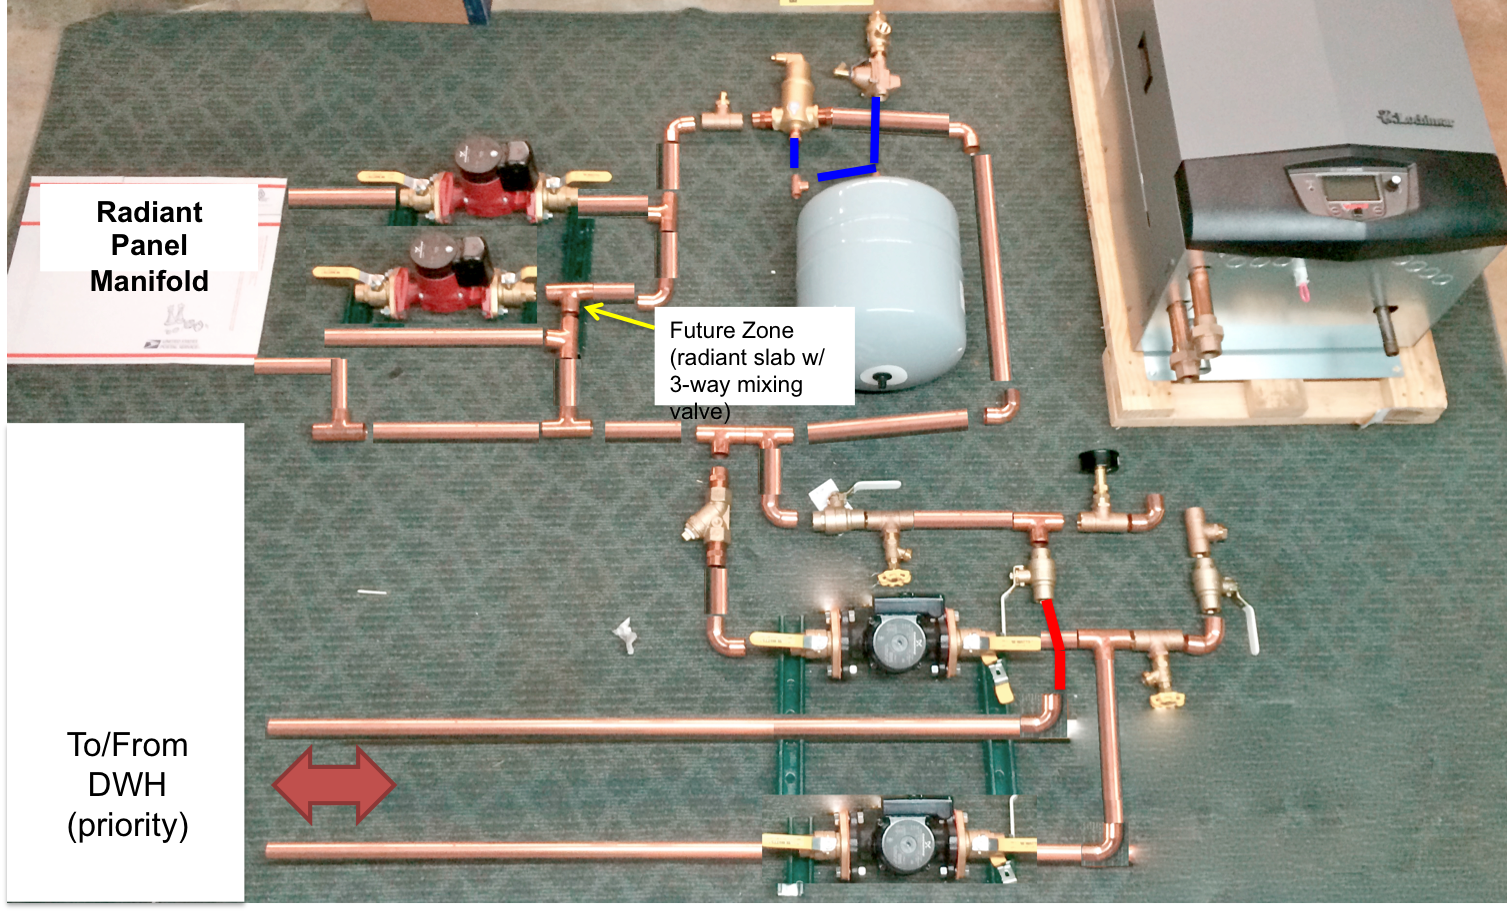 DIAGRAM] 3 Way Zone Valve Piping Diagram FULL Version HD Quality Piping  Diagram - ETHERNETWIRINGIRVINE.WEIGHINGDEVICE.FRDiagram Database - weighingdevice.fr